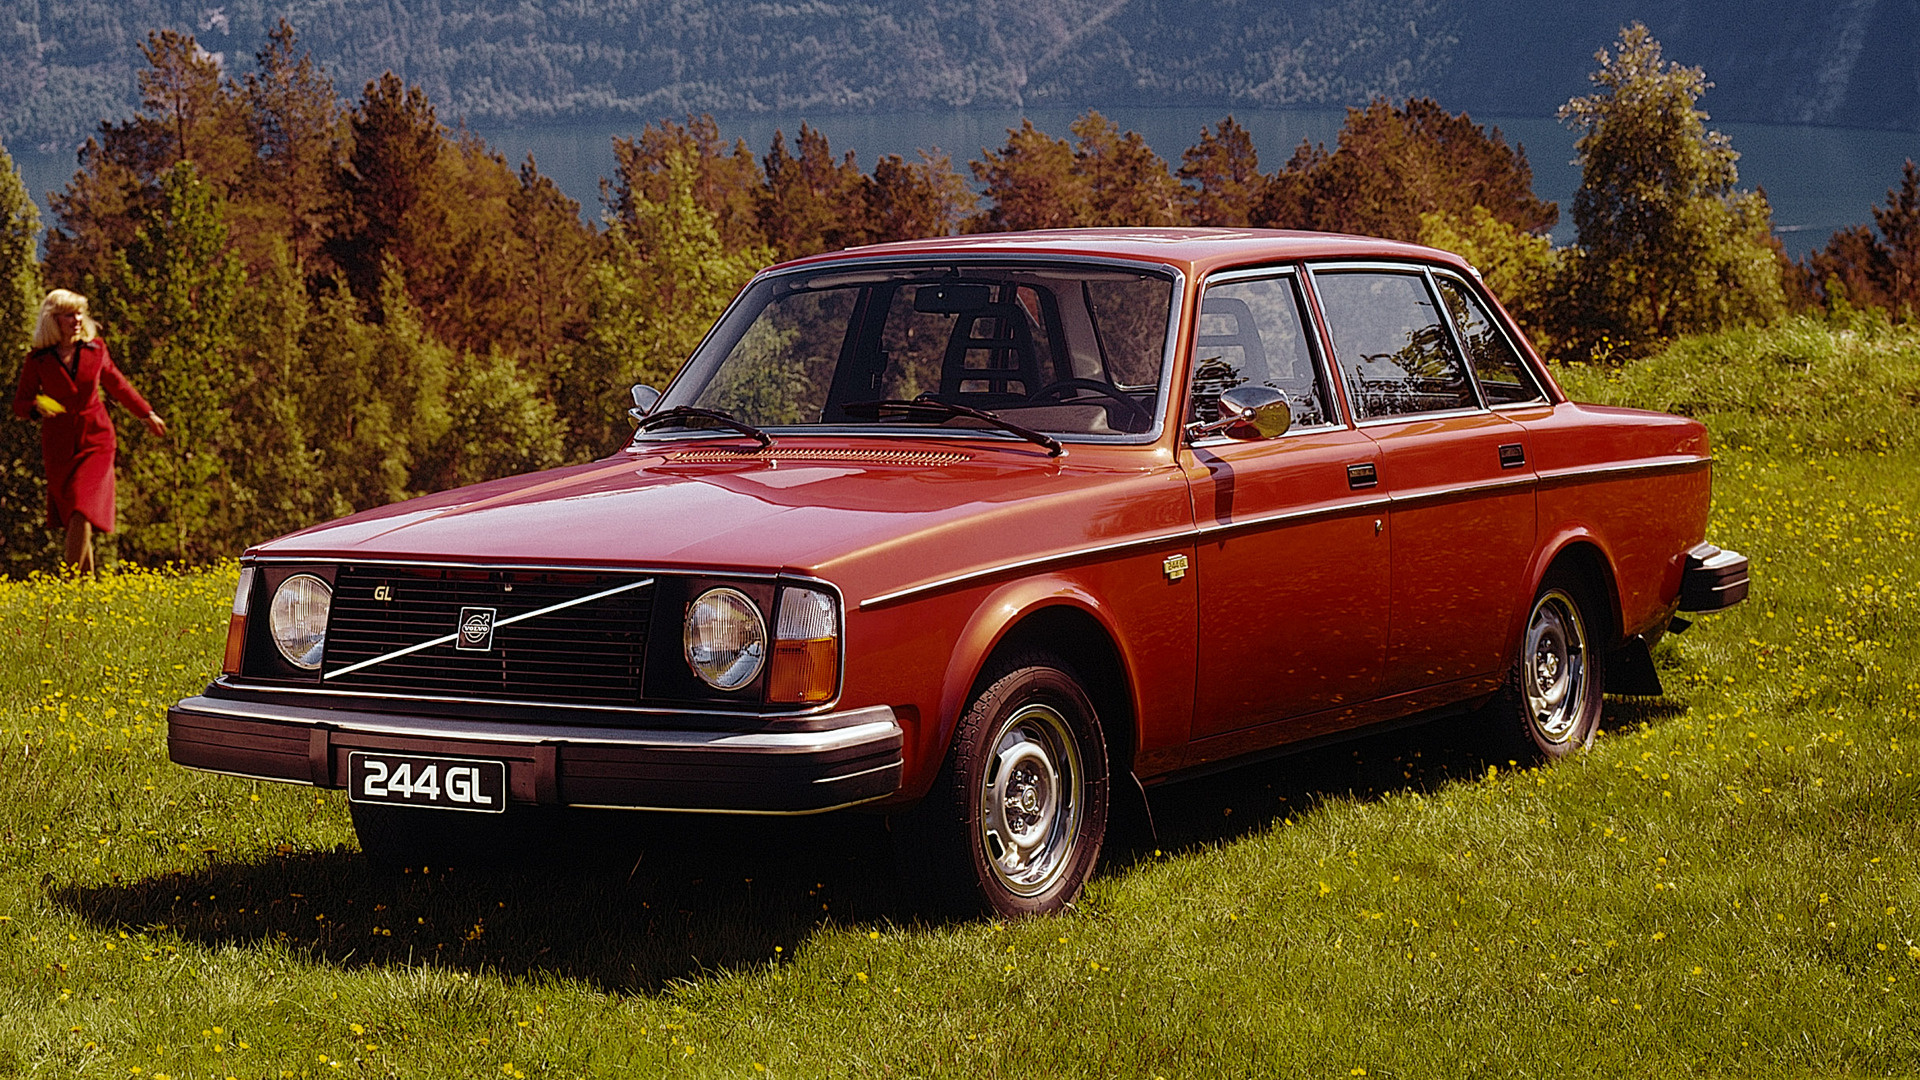 1975 Volvo 244 GL - Wallpapers and HD Images | Car Pixel